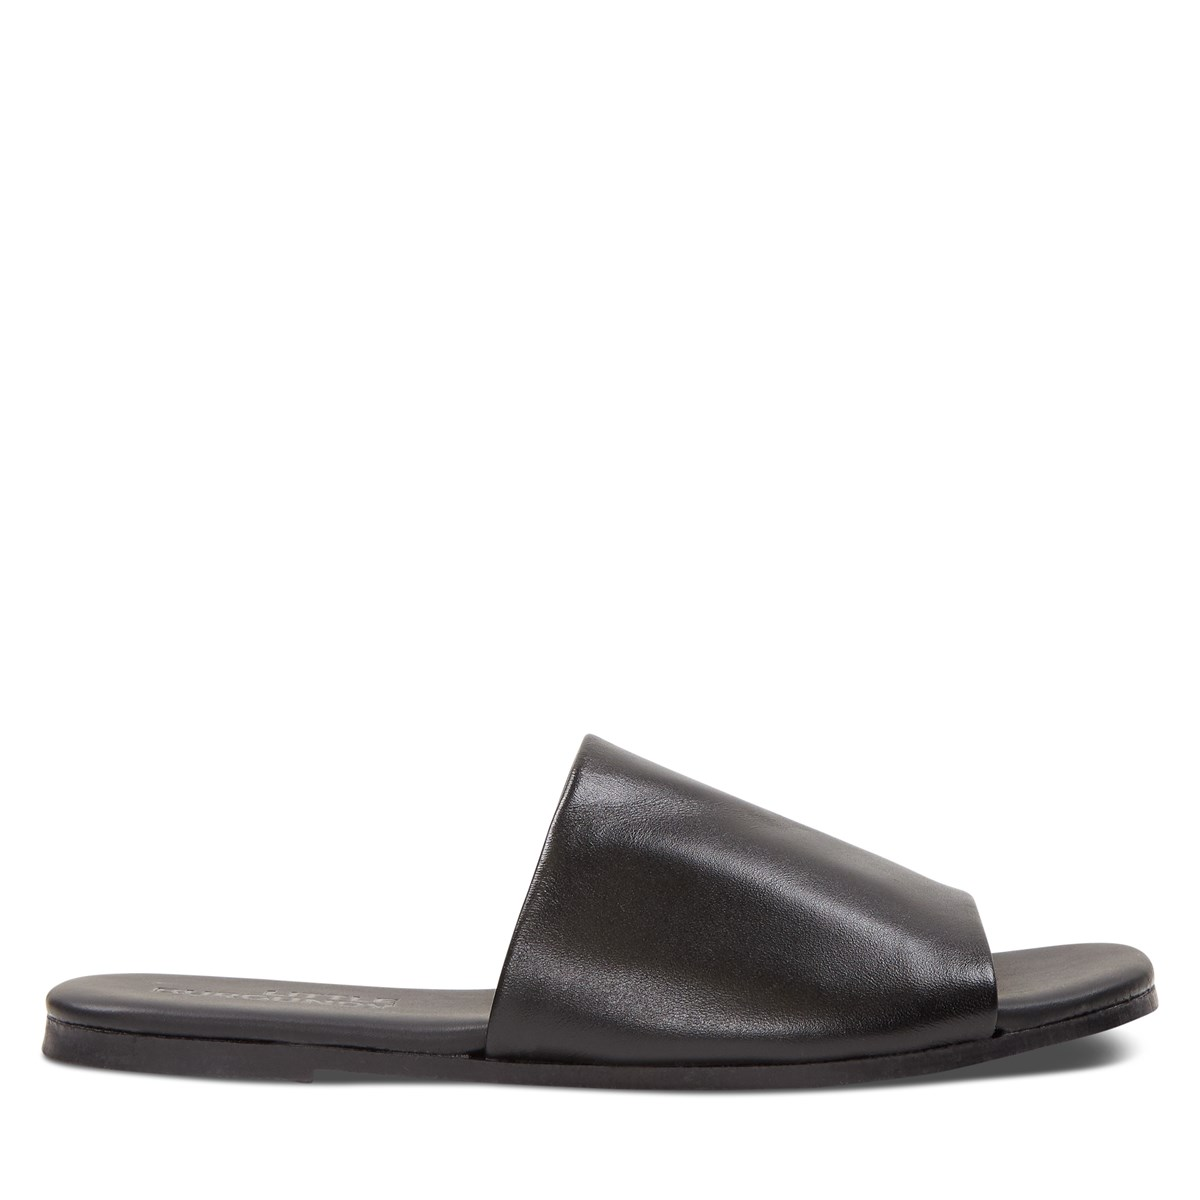 Women's Laure Mules in Black